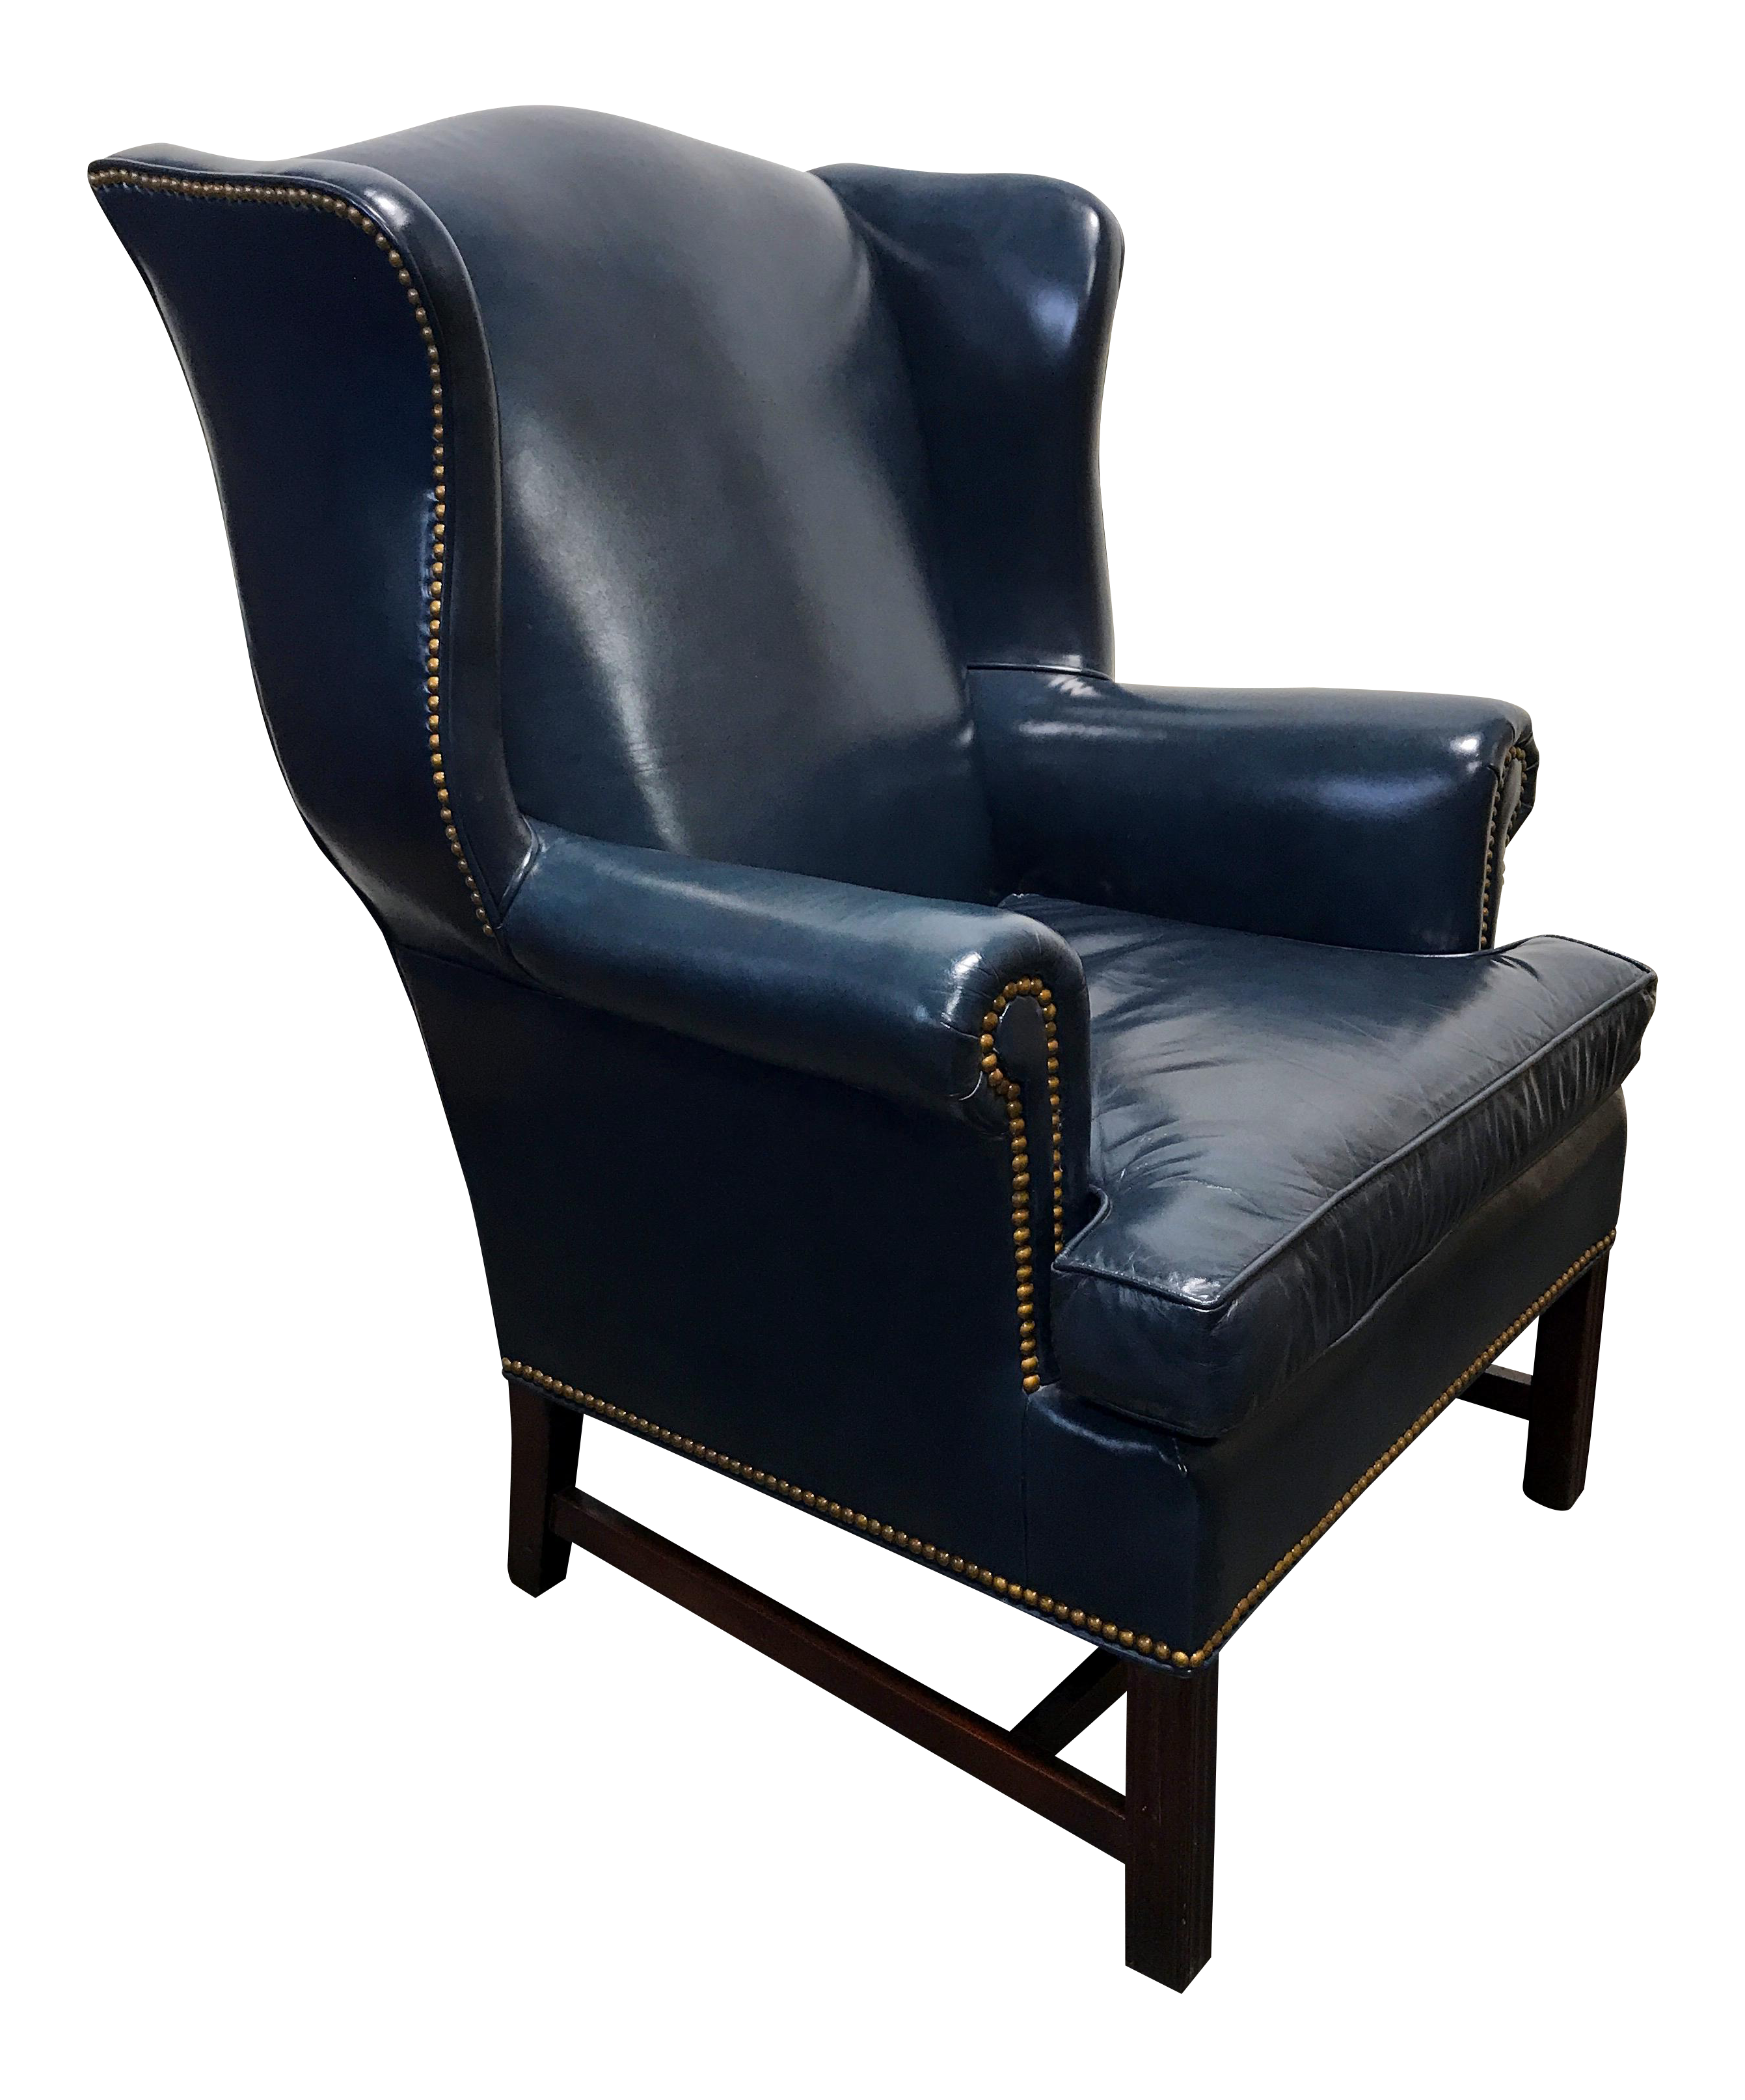 HANCOCK & MOORE Navy Blue Leather Chippendale Wing Chair with